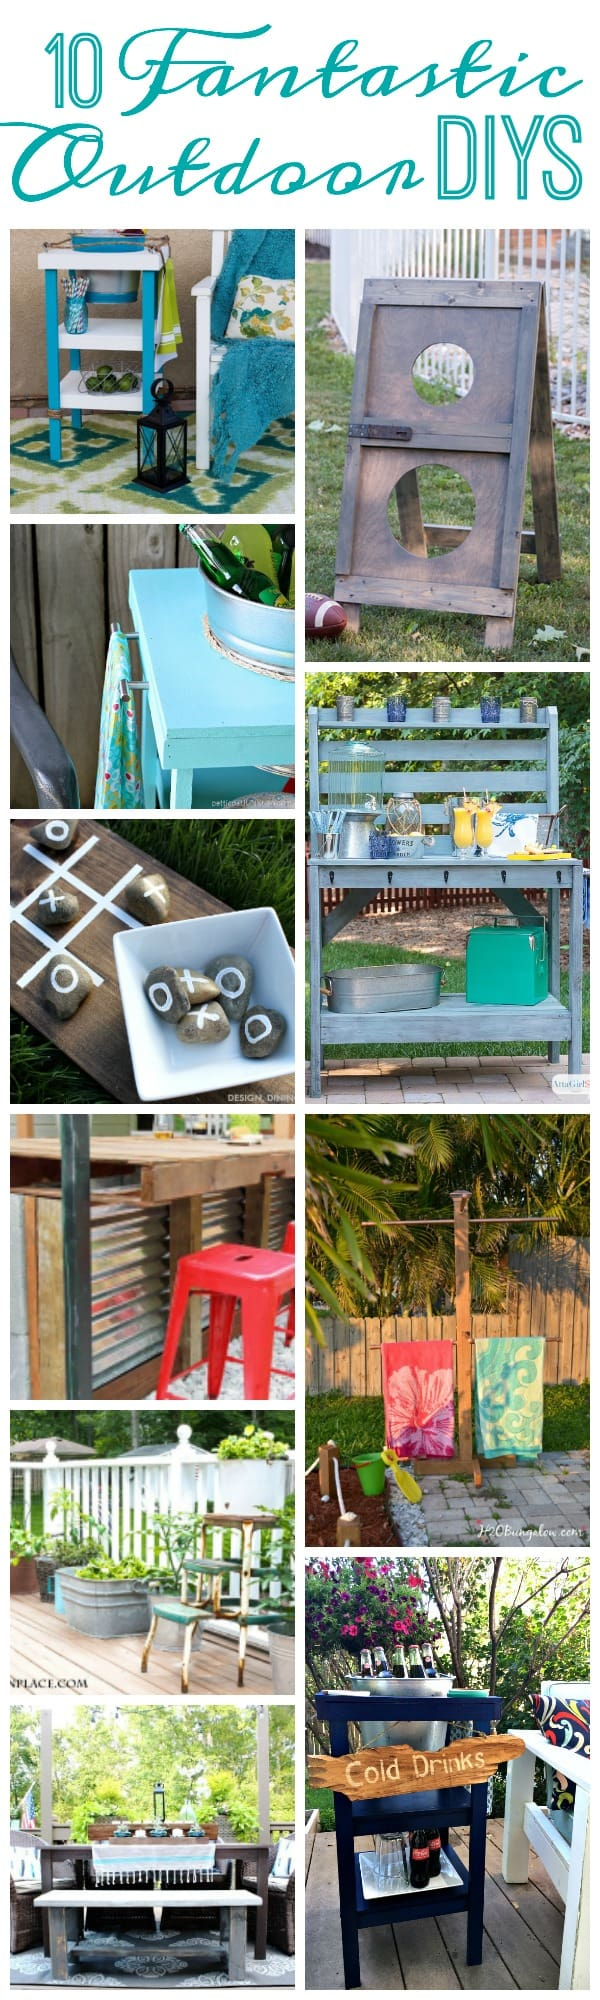 10-Fantastic-Outdoor-DIYS-featured-from-Work-it-Wednesday